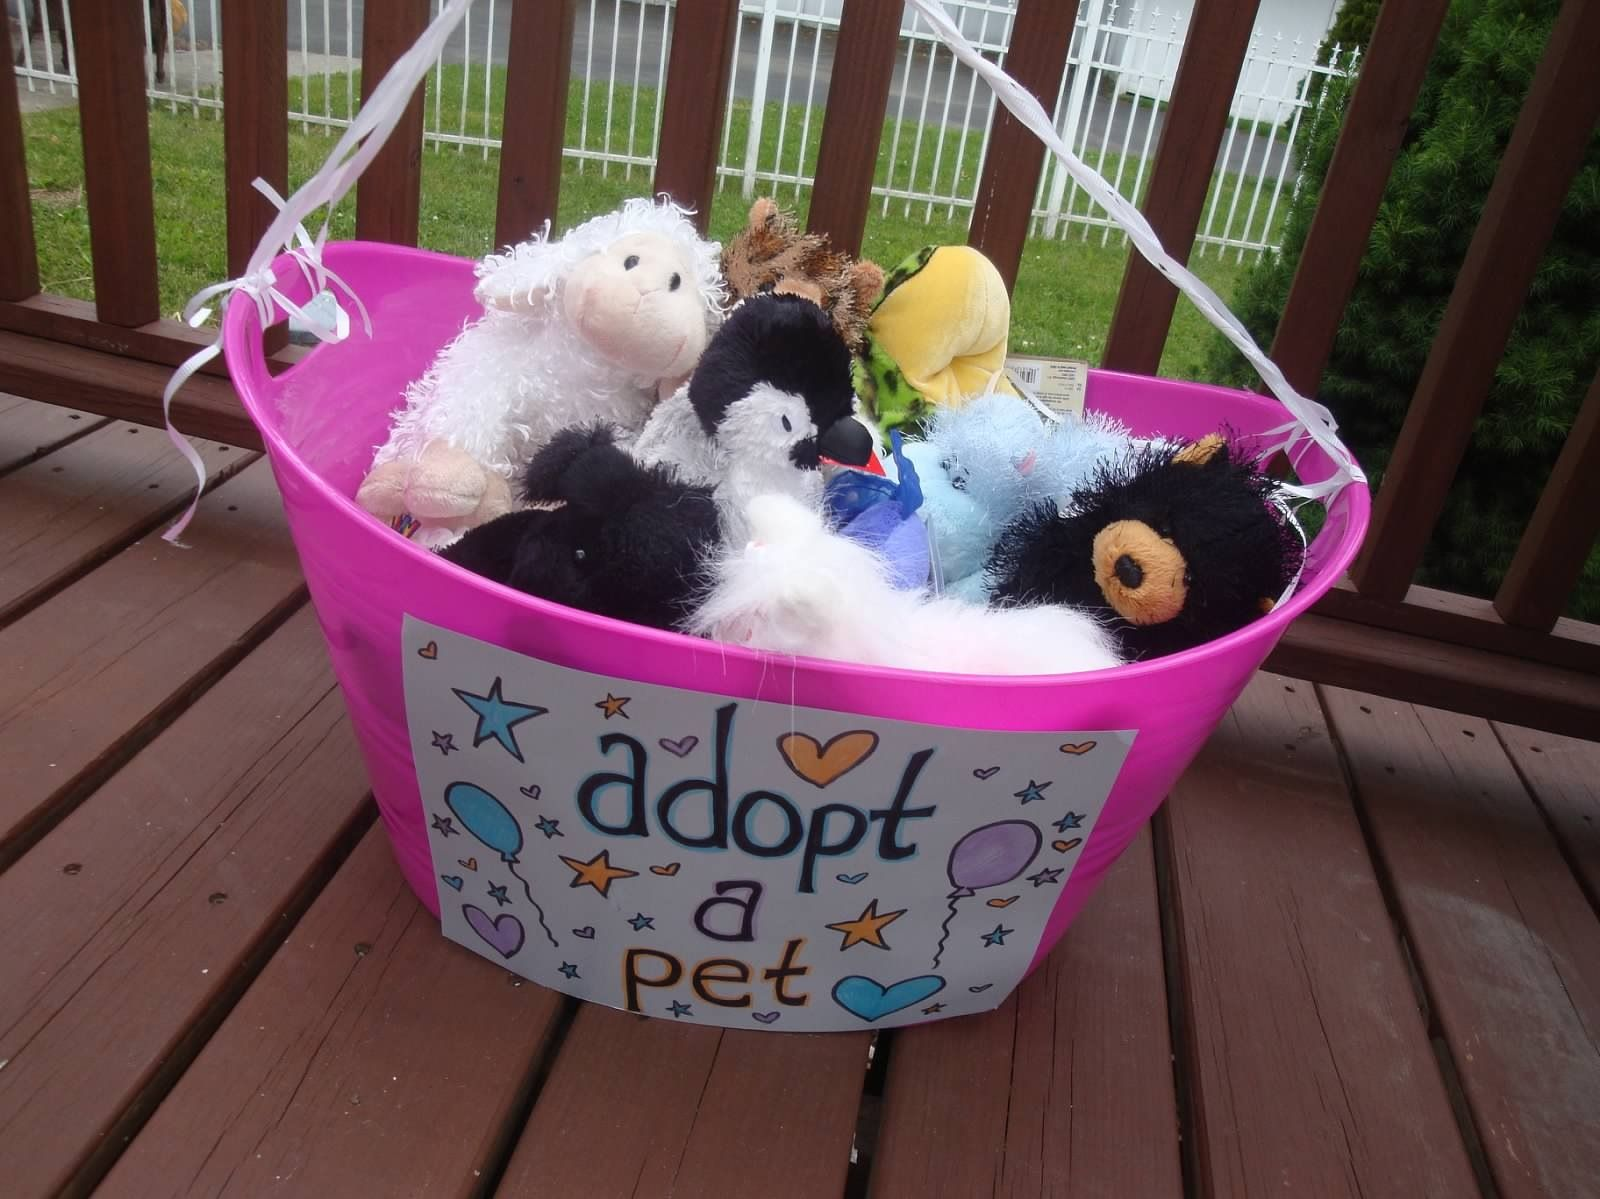 Adopt A Pet Stuffed Animal Birthday Party Favors For The Little Kids Found Webkins On Amazon For Pret Animal Birthday Party Animal Birthday Barnyard Birthday [ 1199 x 1600 Pixel ]